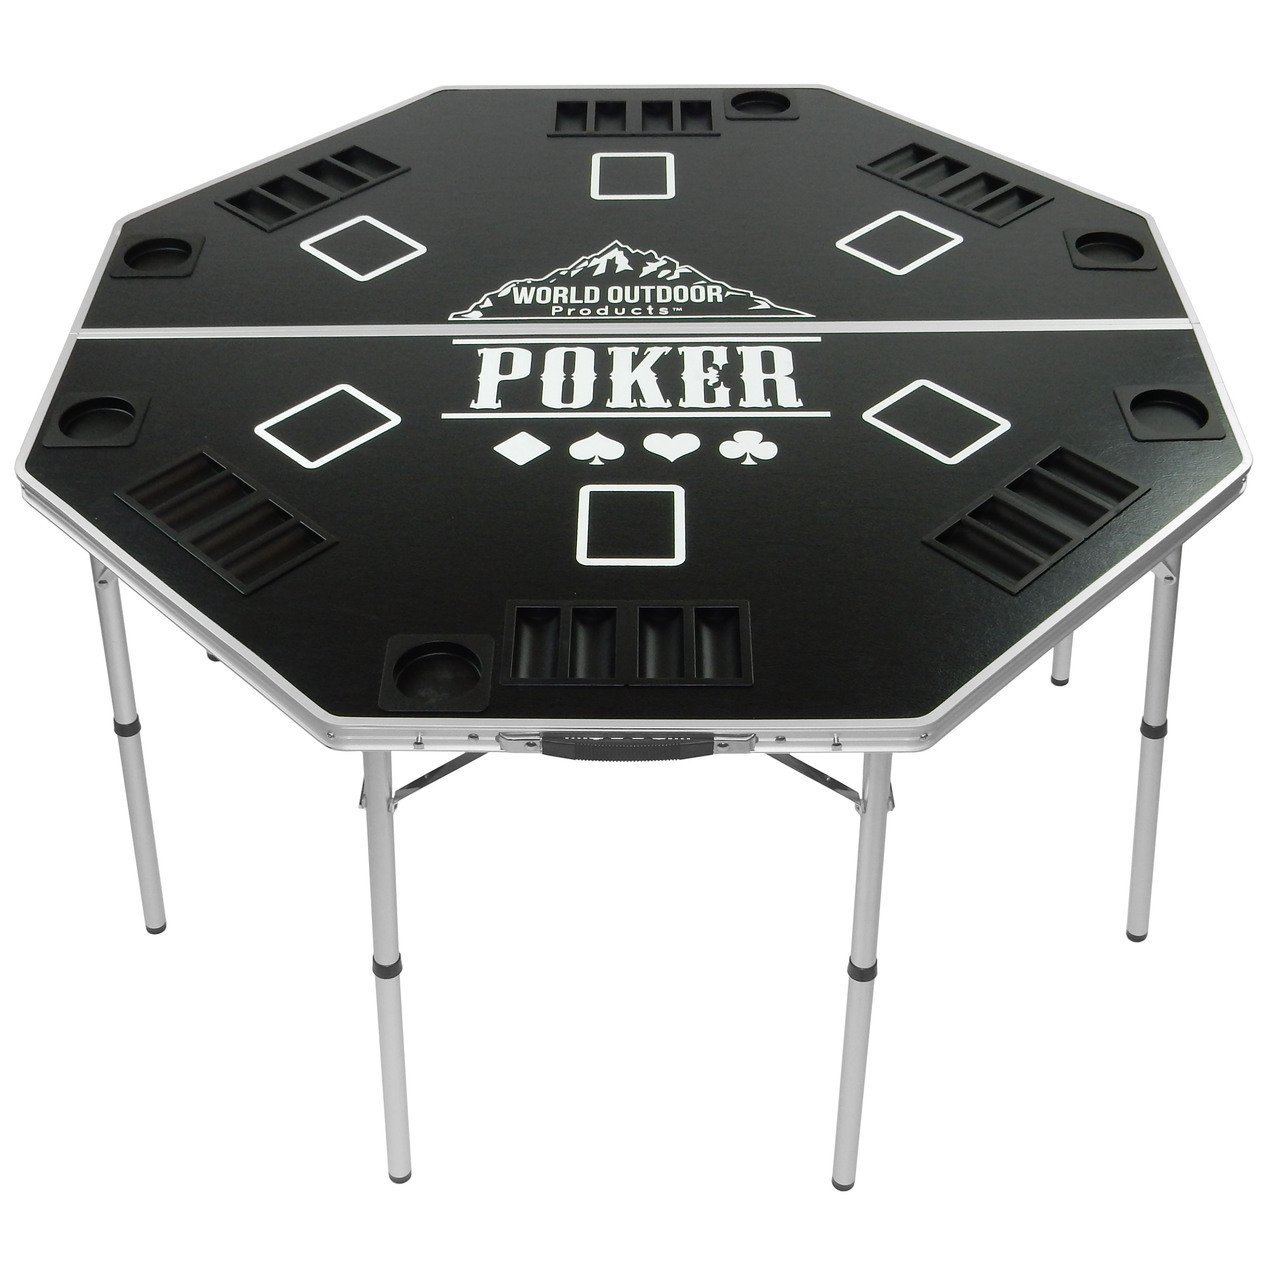 Oasis Outdoor Products Professional High Roller Tour Lightweight Portable Folding Poker Table by Oasis (Image #1)